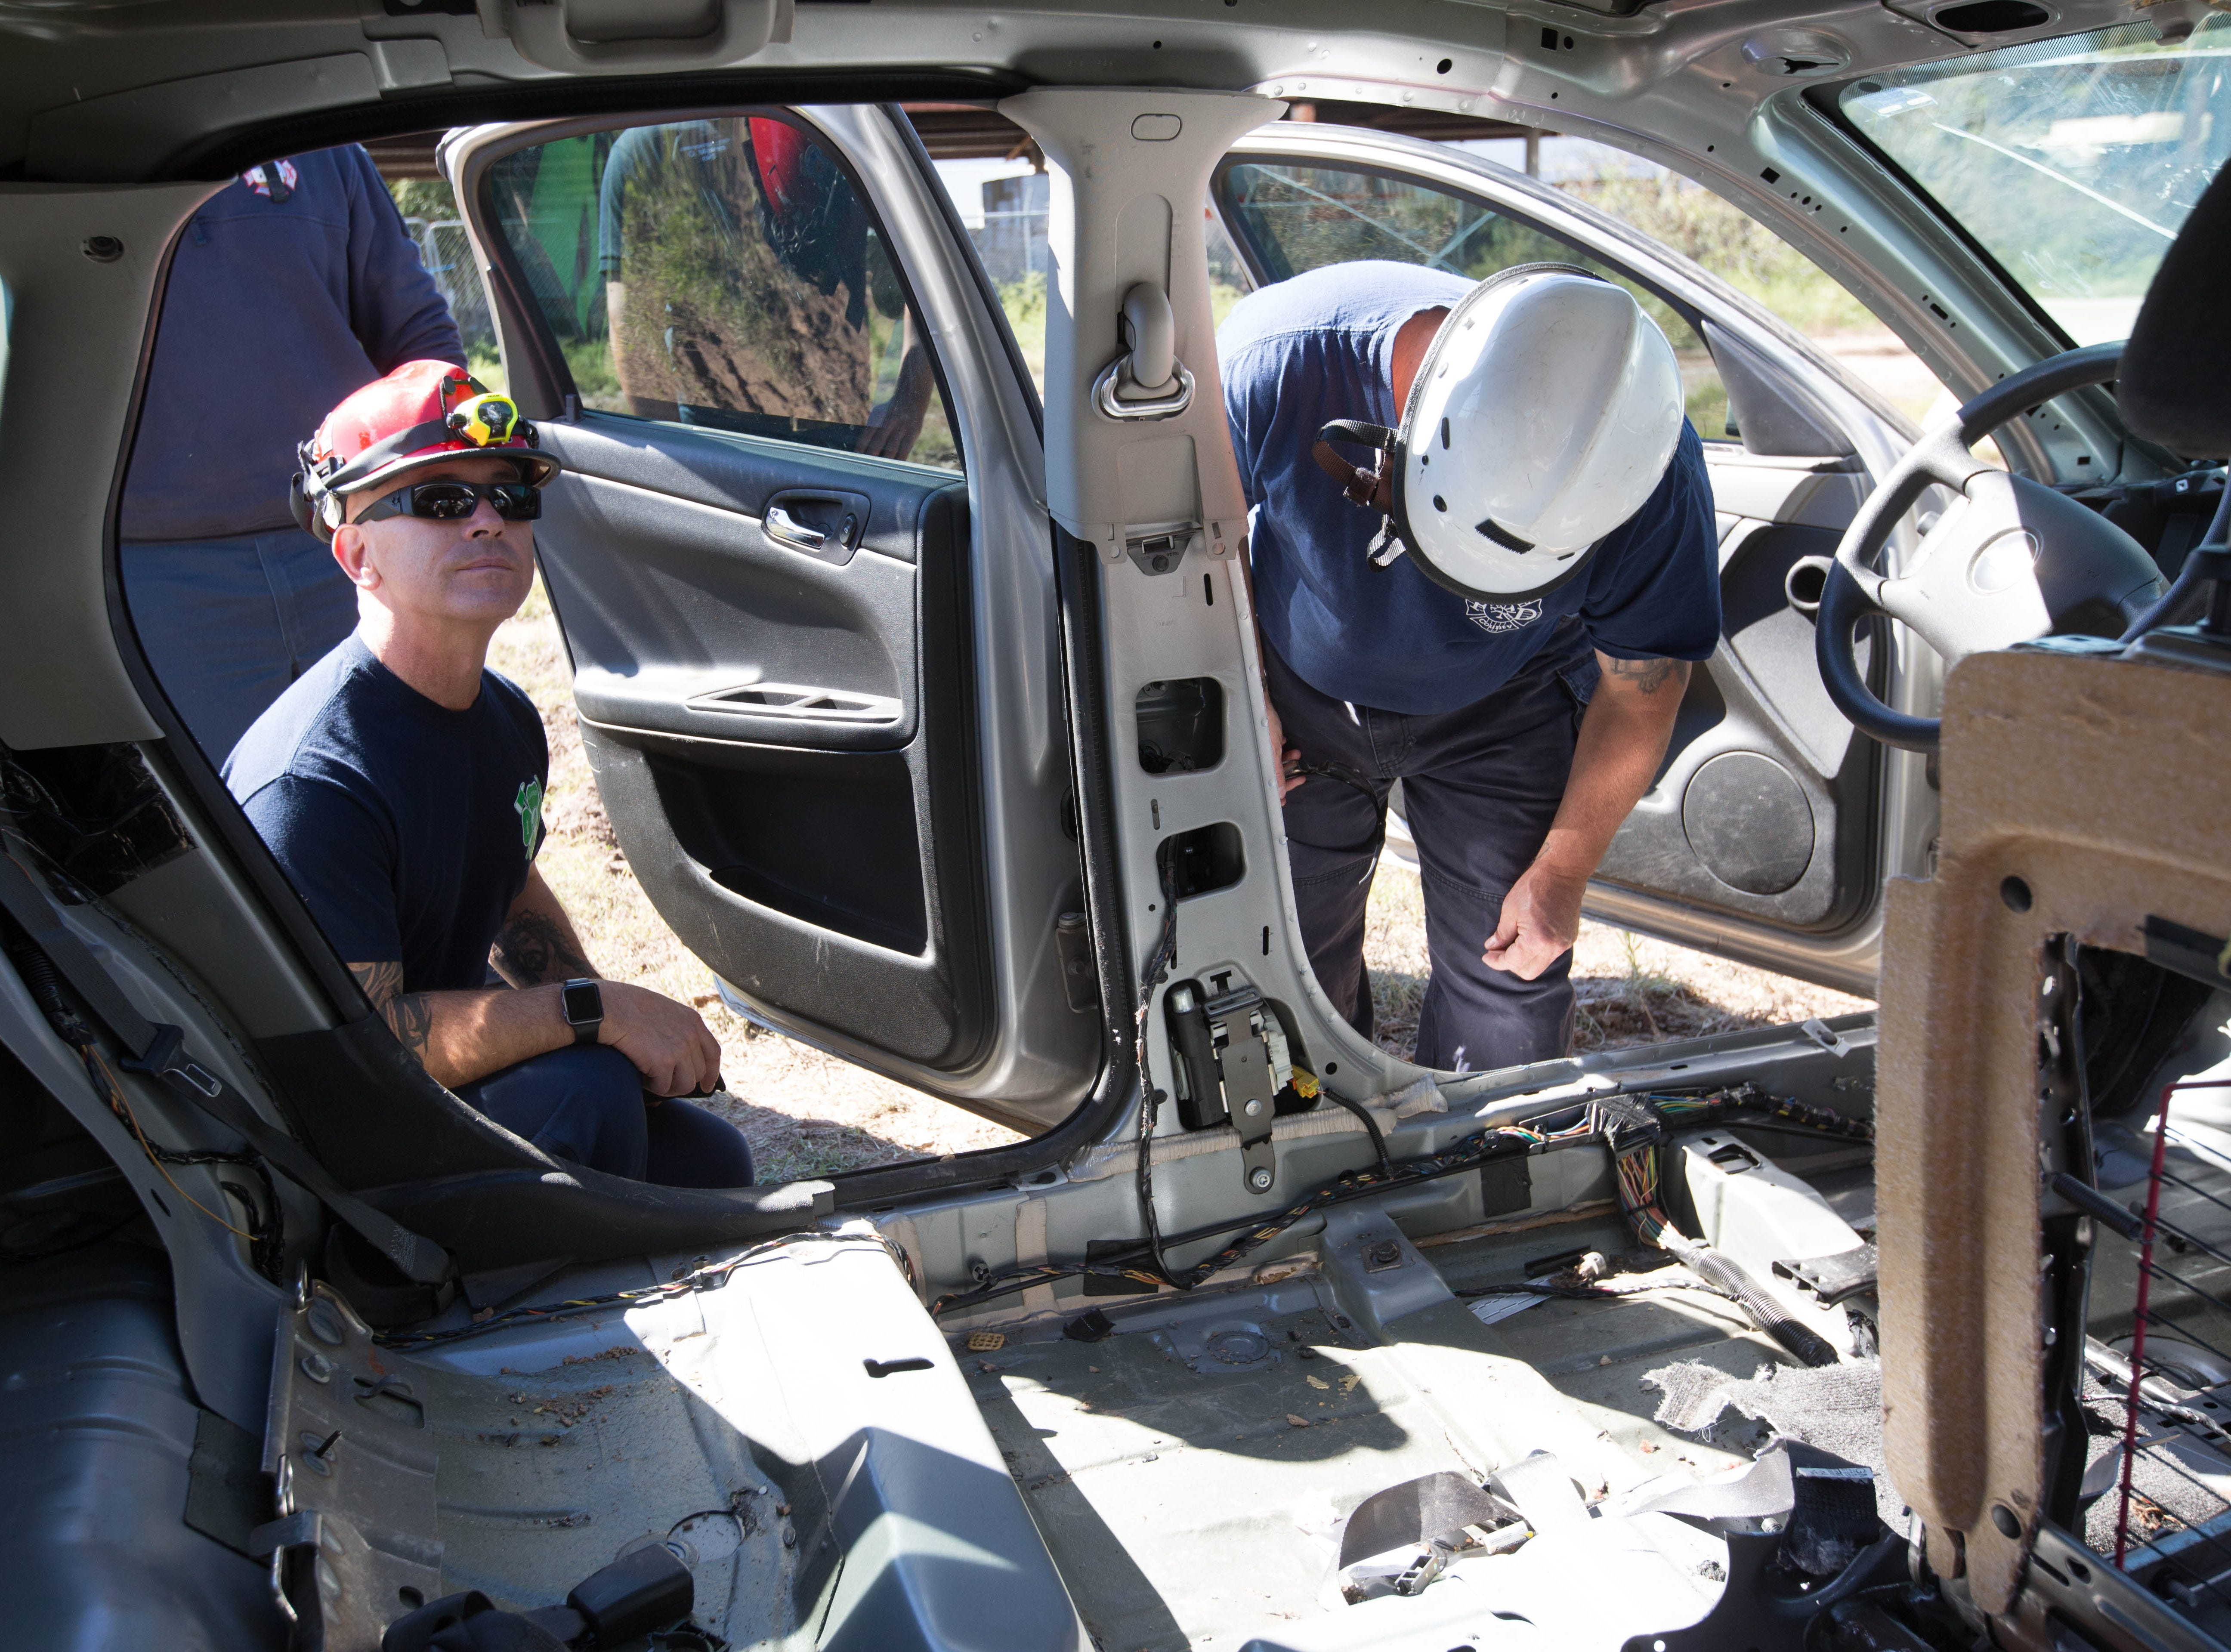 Chris Goodwin,  left, a firefighter from Albuquerque  Fire Rescue and Wayne Wendell, deputy chief from San Juan County Fire, look around a vehicle that has been stripped so firefighters can see the structure of a vehicle, getting an idea of areas they can cut or disassemble when they encounter them on the job, Friday October 26, 2018, during a three-day advanced auto extraction class.